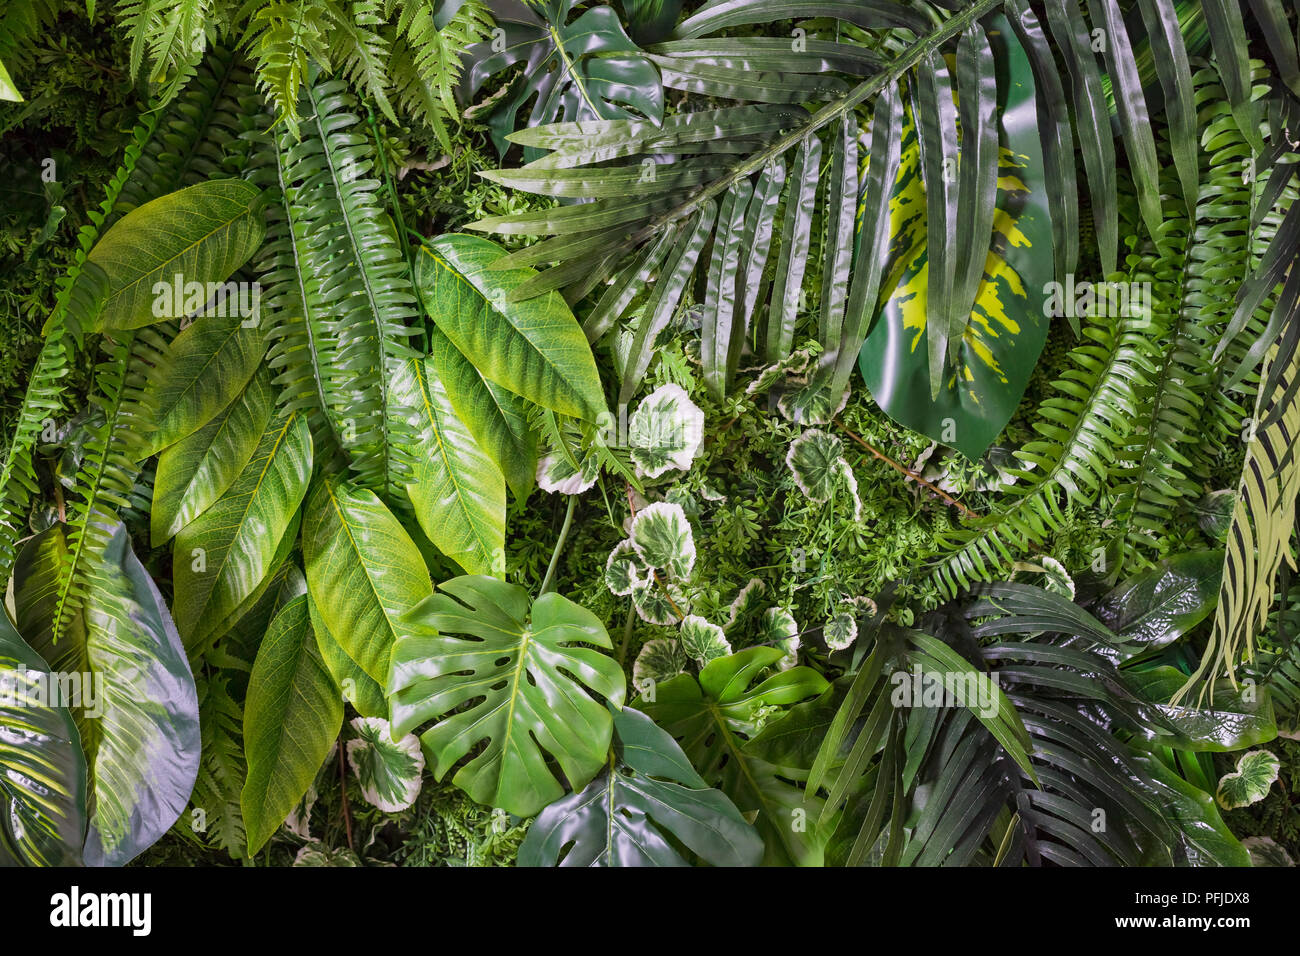 jungle leaves dark stock photos jungle leaves dark stock images